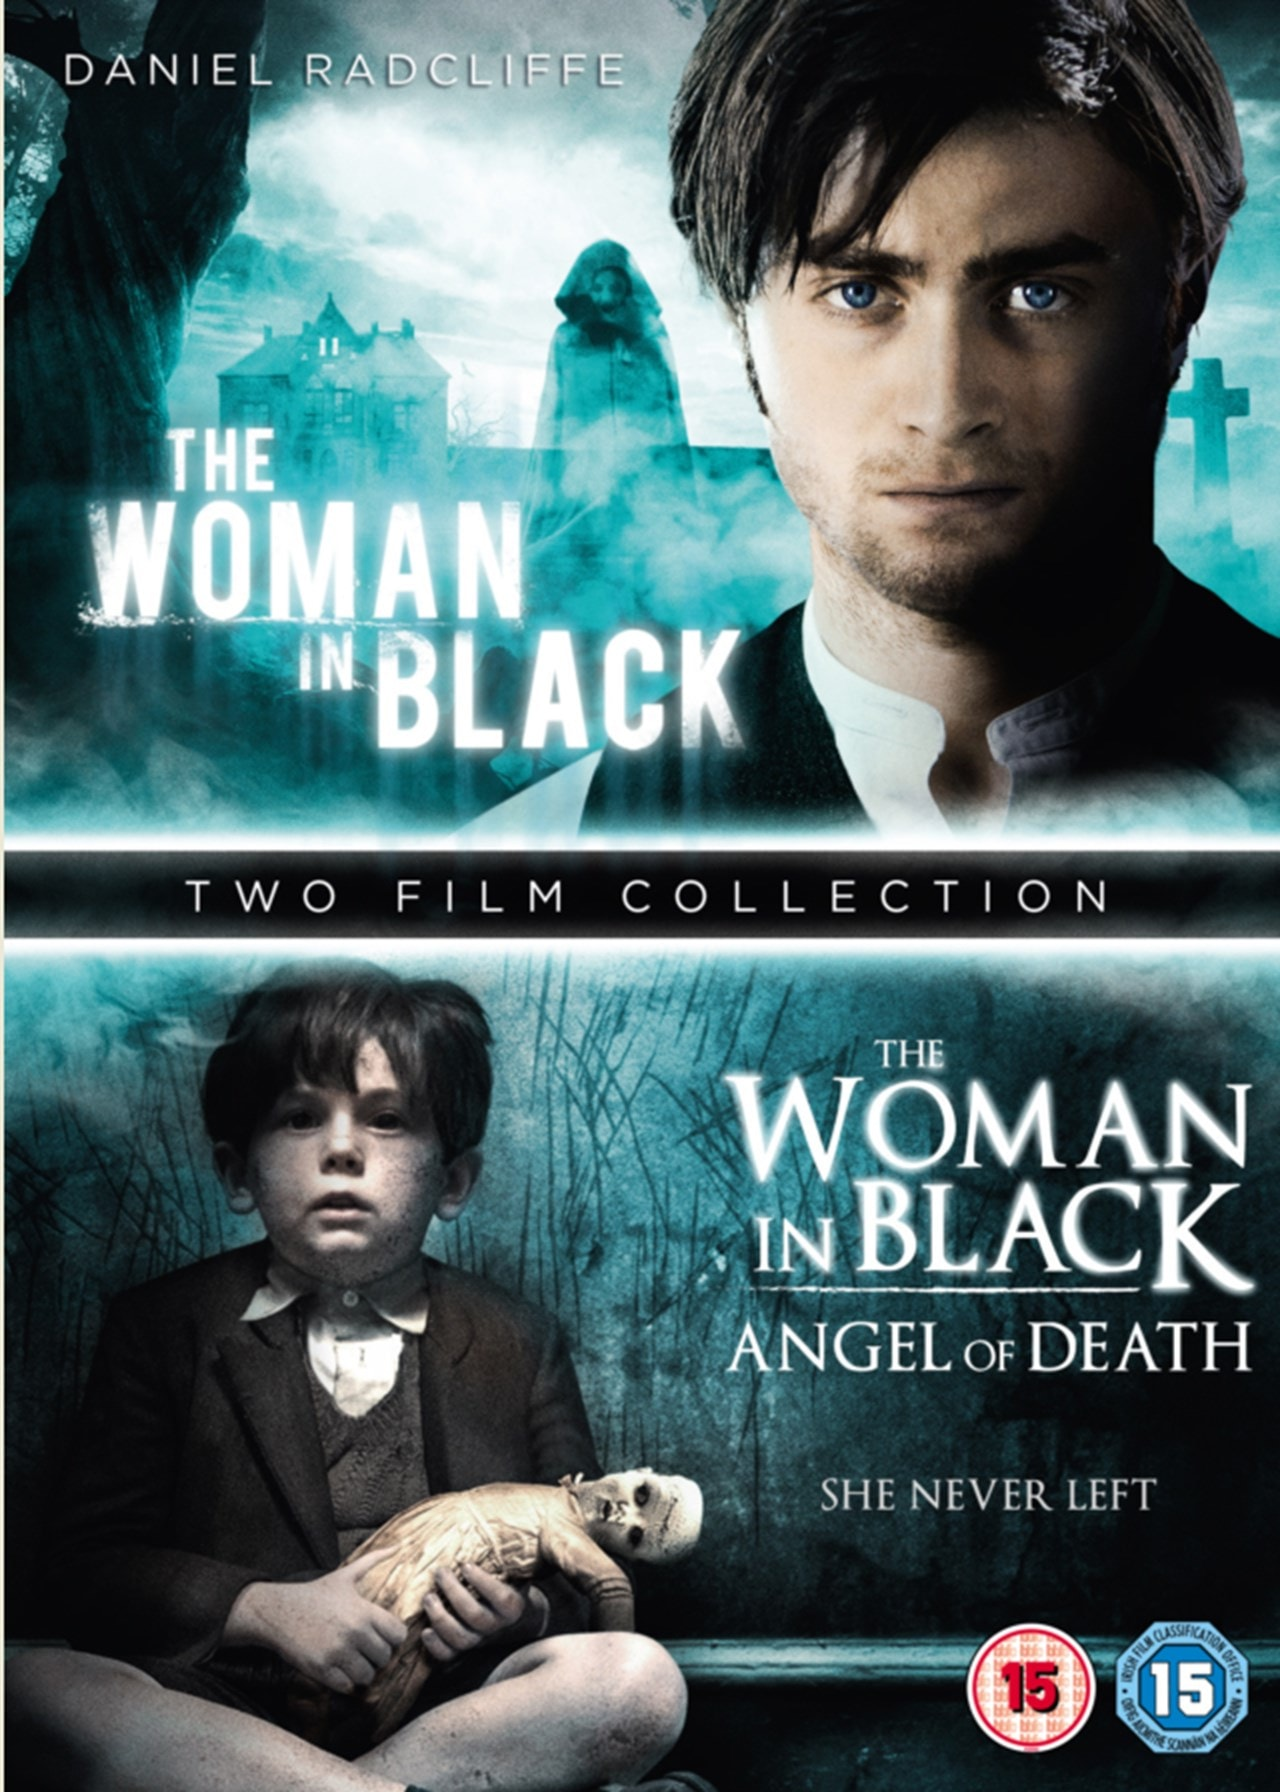 The Woman in Black/The Woman in Black: Angel of Death - 1